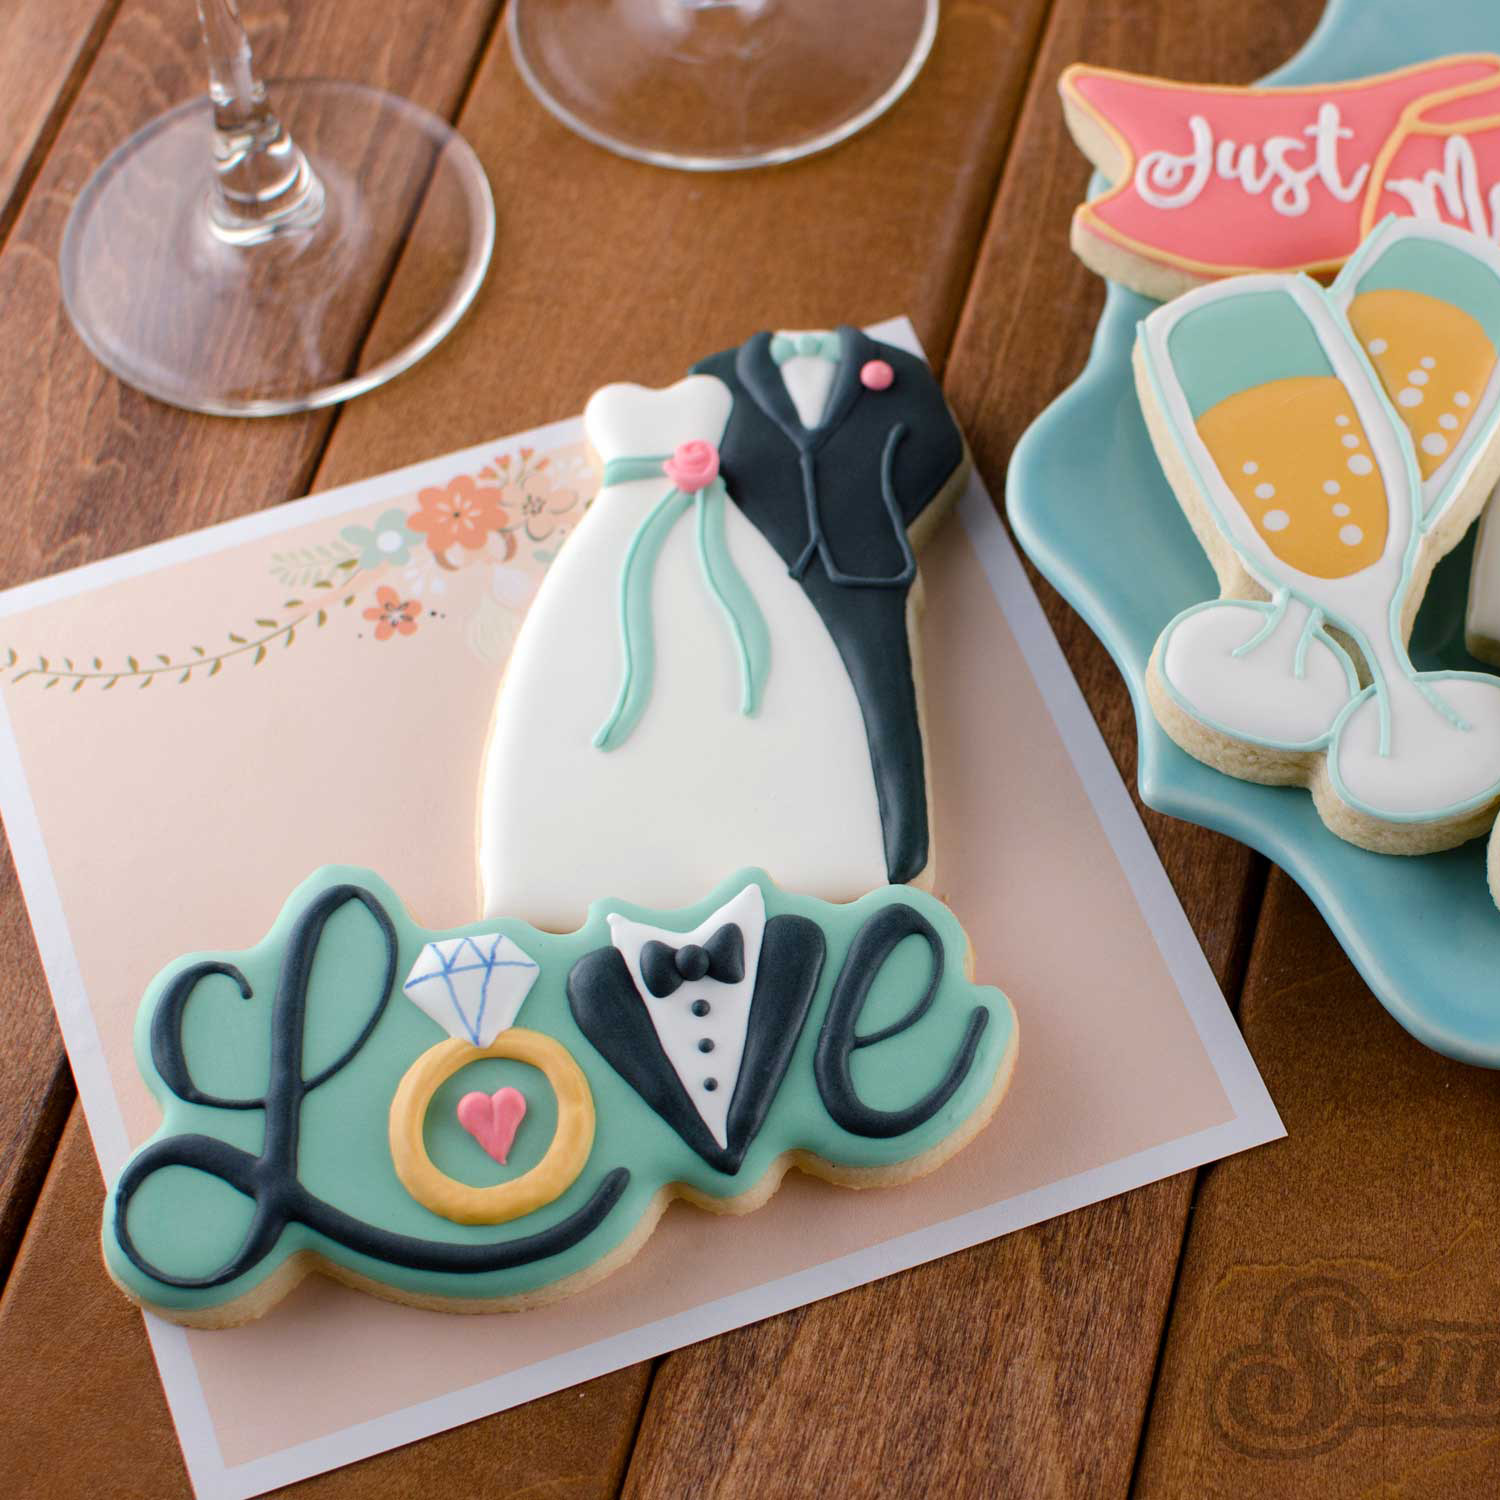 How to Make Wedding Love Cookies